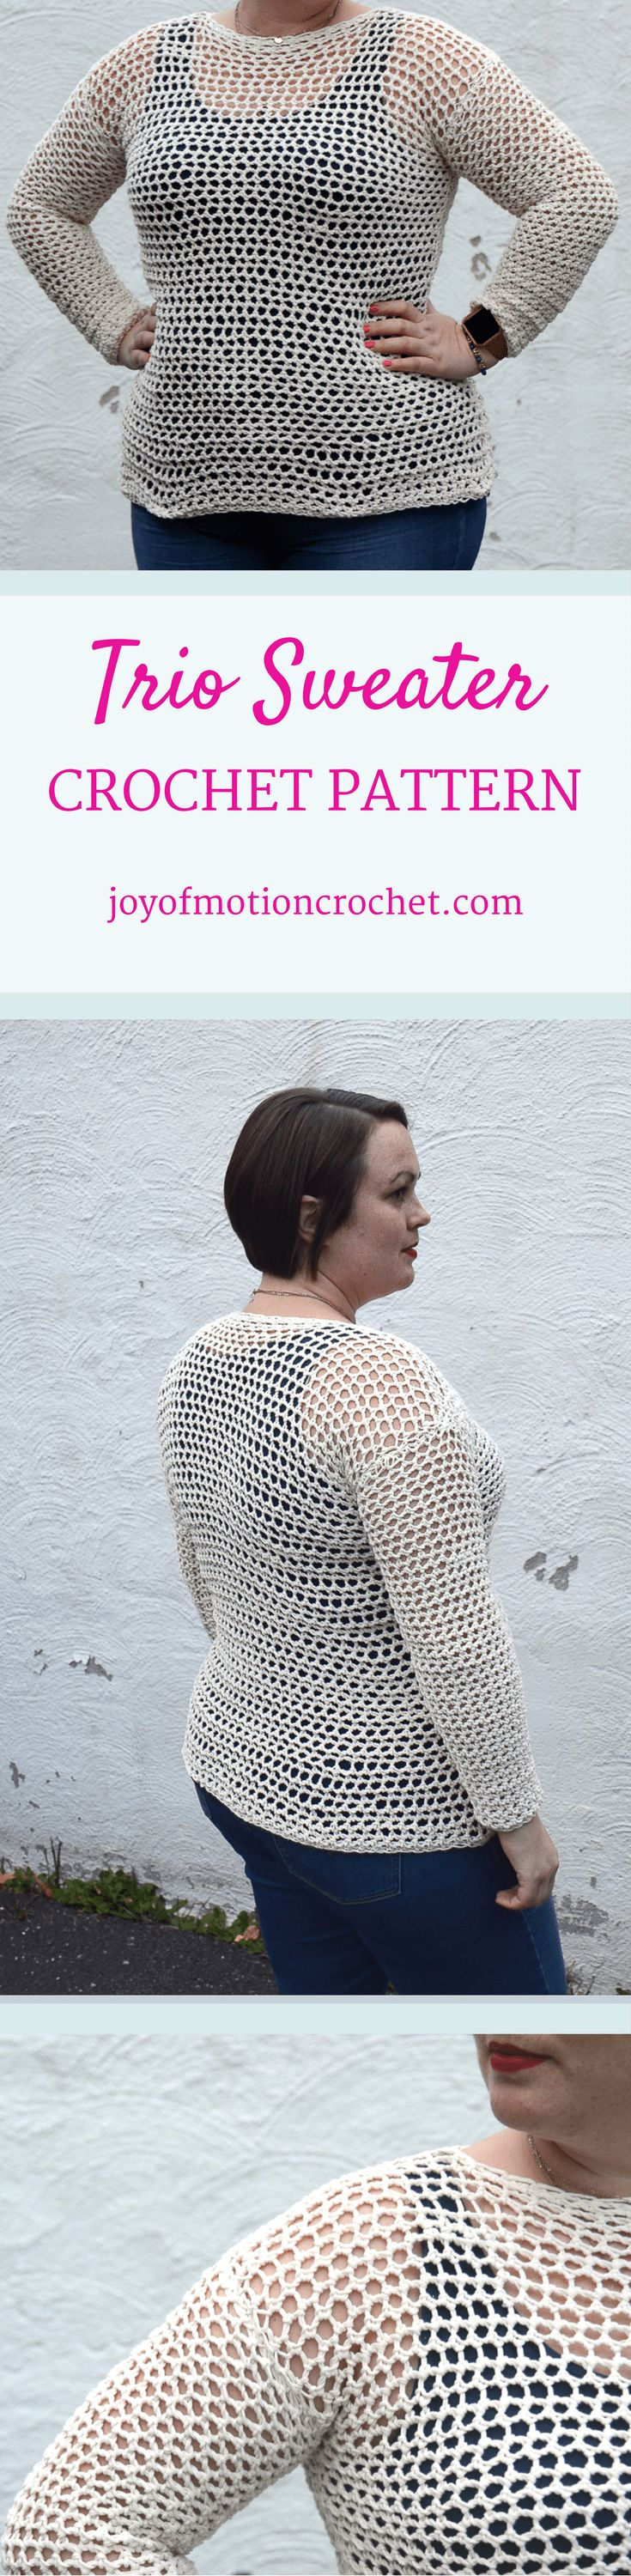 The Trio Sweater a crochet pattern. Woman's sweater crochet pattern with skill level beginner. Make this fashionable crochet sweater with you own hook & yarn. Sweater crochet pattern beginner for her . Crochet sweater | woman's crochet sweater | crochet pattern for her | fashionable crochet sweater | interesting crochet sweater | click to learn more or repin to save it forever. via @http://pinterest.com/joyofmotion/